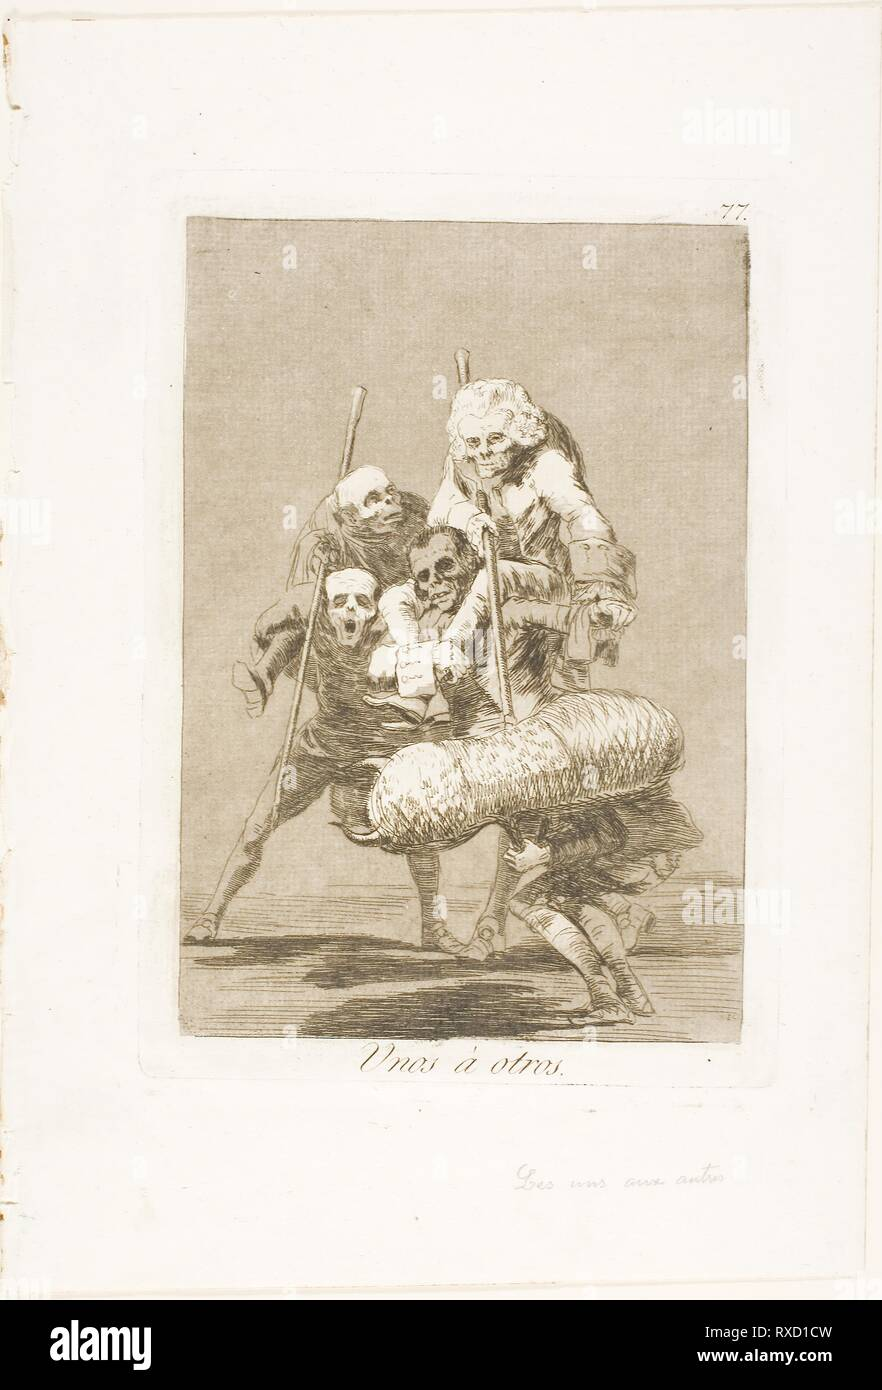 What One Does to Another, plate 77 from Los Caprichos. Francisco José de Goya y Lucientes; Spanish, 1746-1828. Date: 1797-1799. Dimensions: 193 x 133 mm (image); 214 x 150 mm (plate); 301 x 207 mm (sheet). Etching and aquatint on ivory laid paper. Origin: Spain. Museum: The Chicago Art Institute. - Stock Image